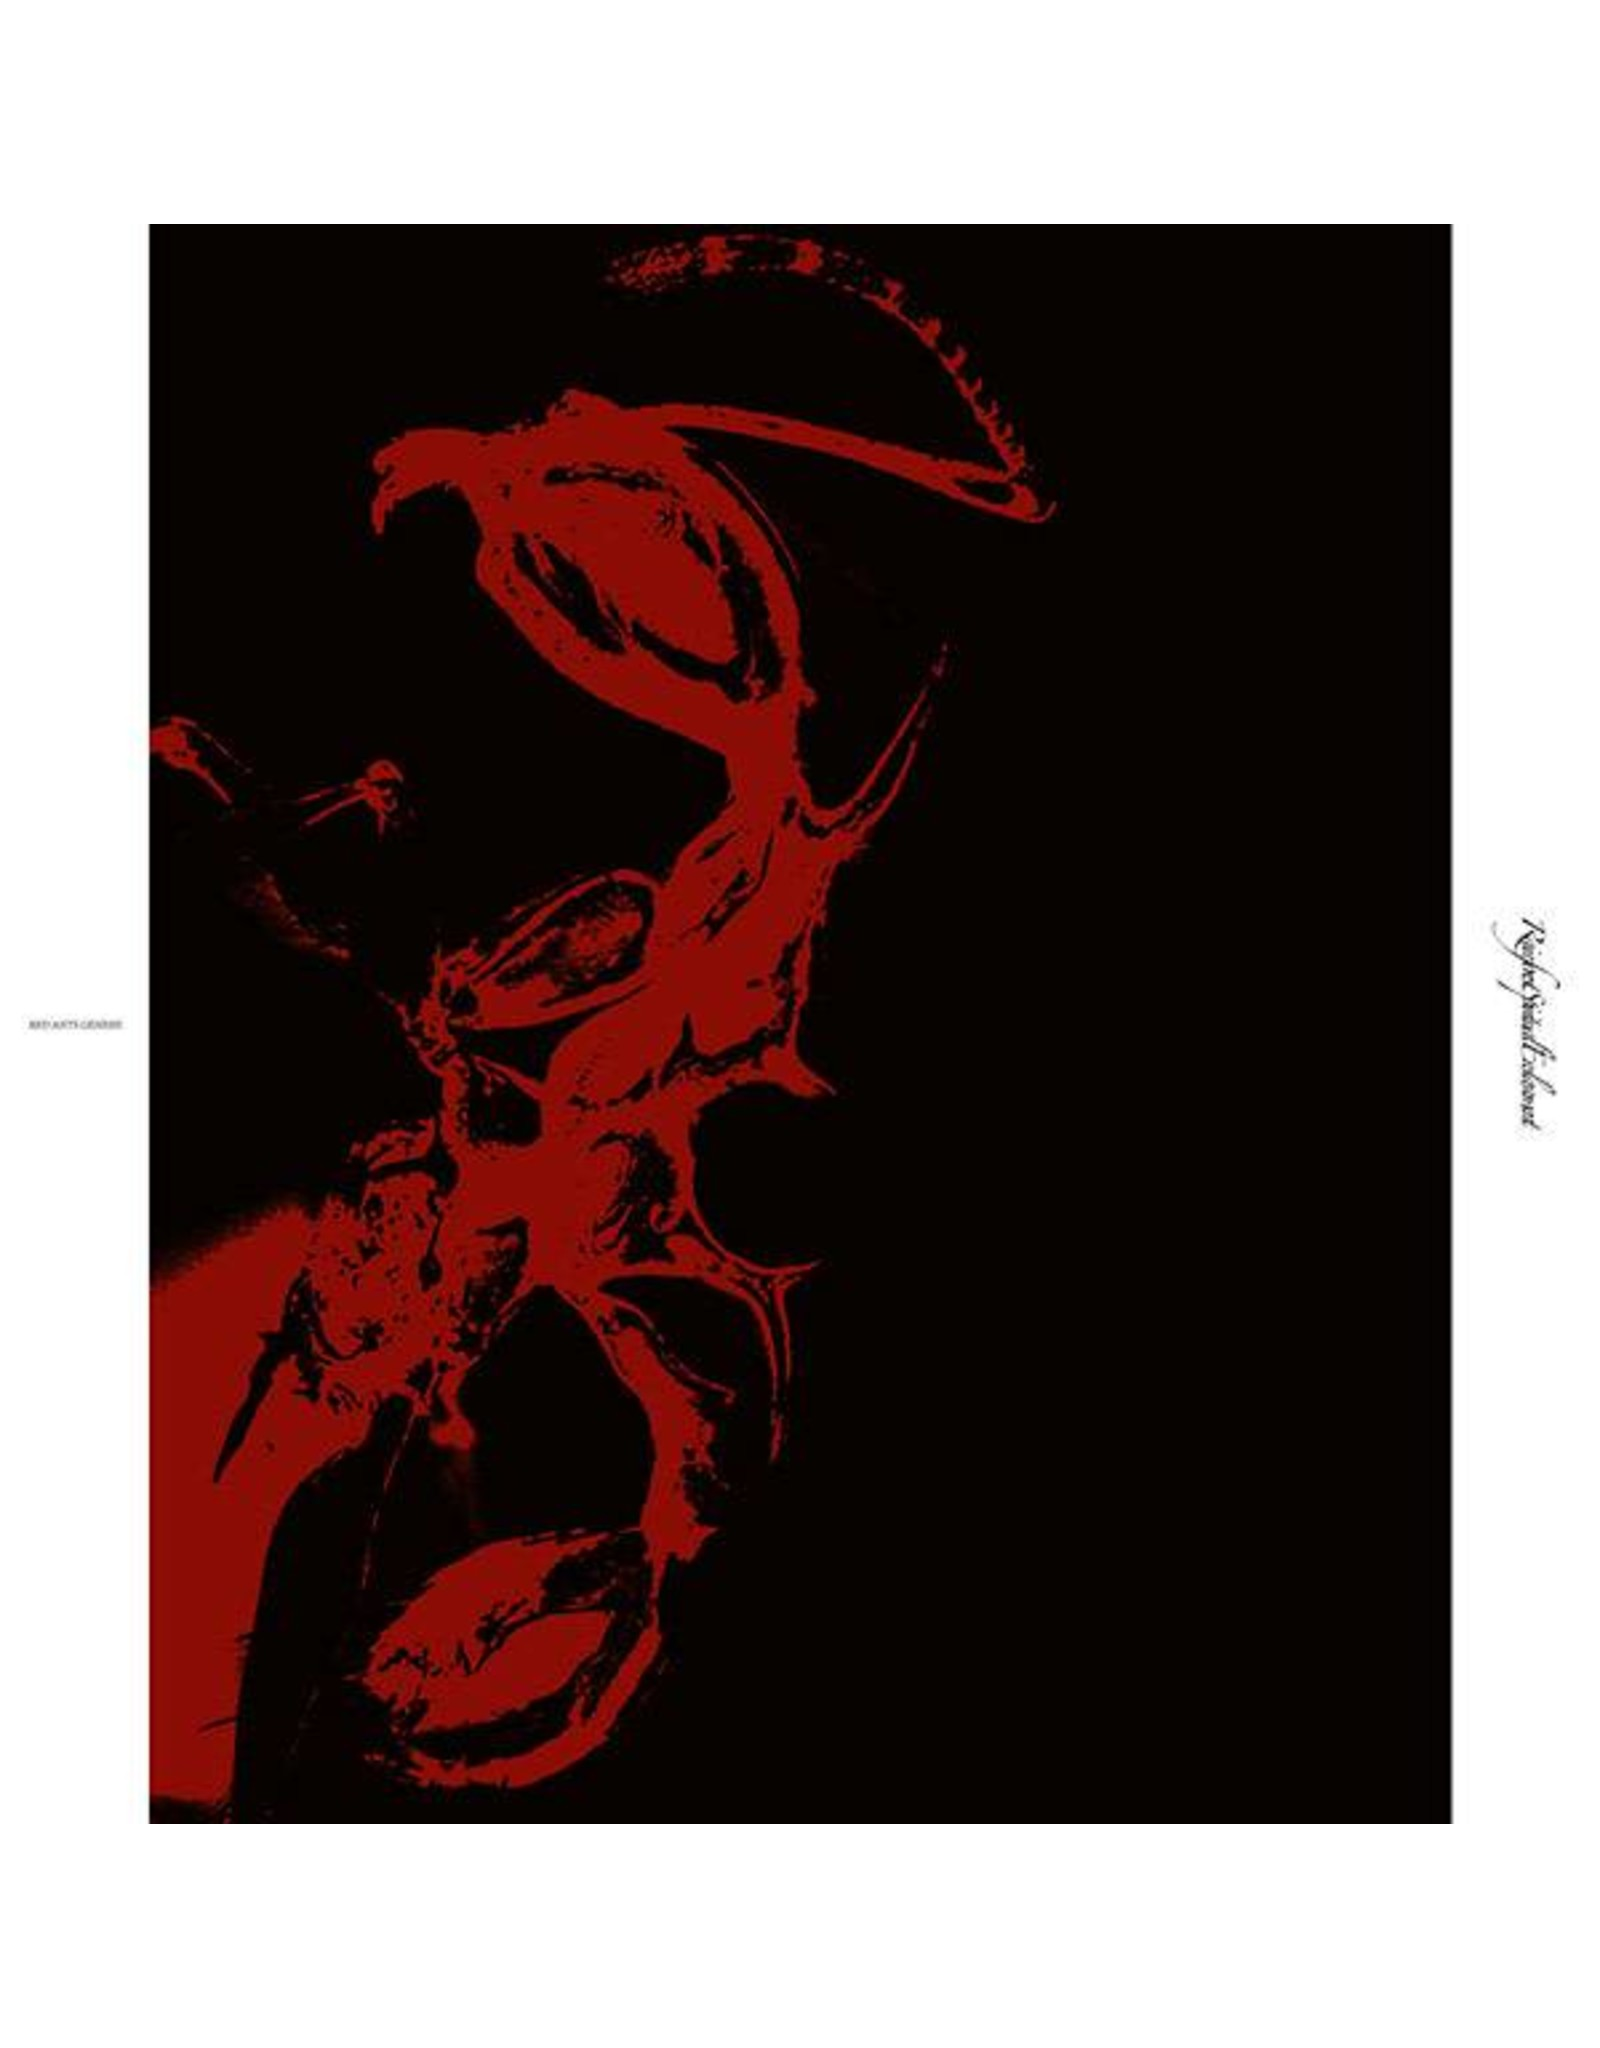 Hospital Rainforest Spiritual Enslavement: Red Ants Genesis LP